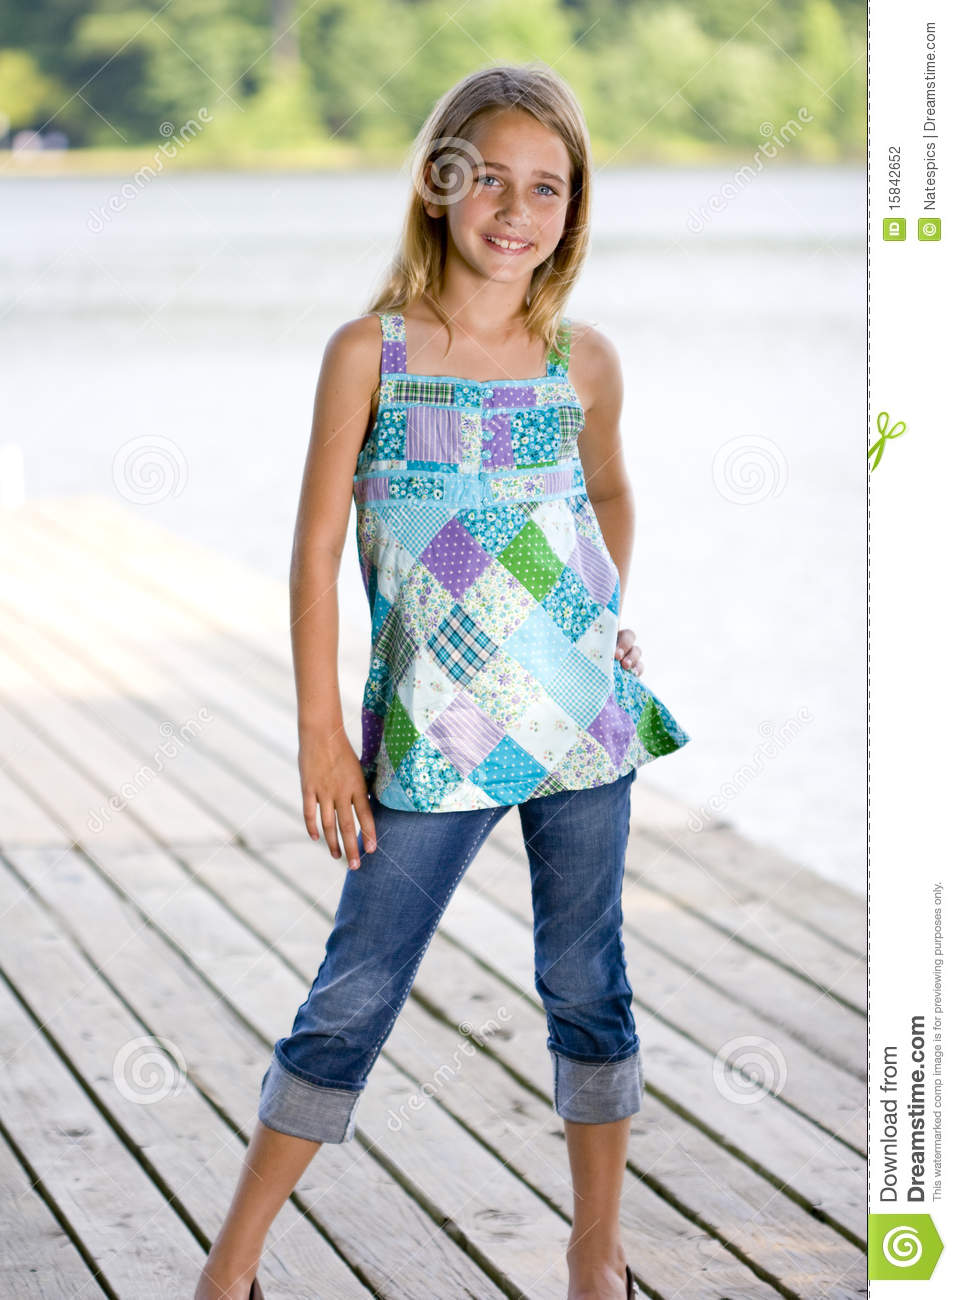 young pretty girl standing on a dock stock photo image of tween child 15842652. Black Bedroom Furniture Sets. Home Design Ideas